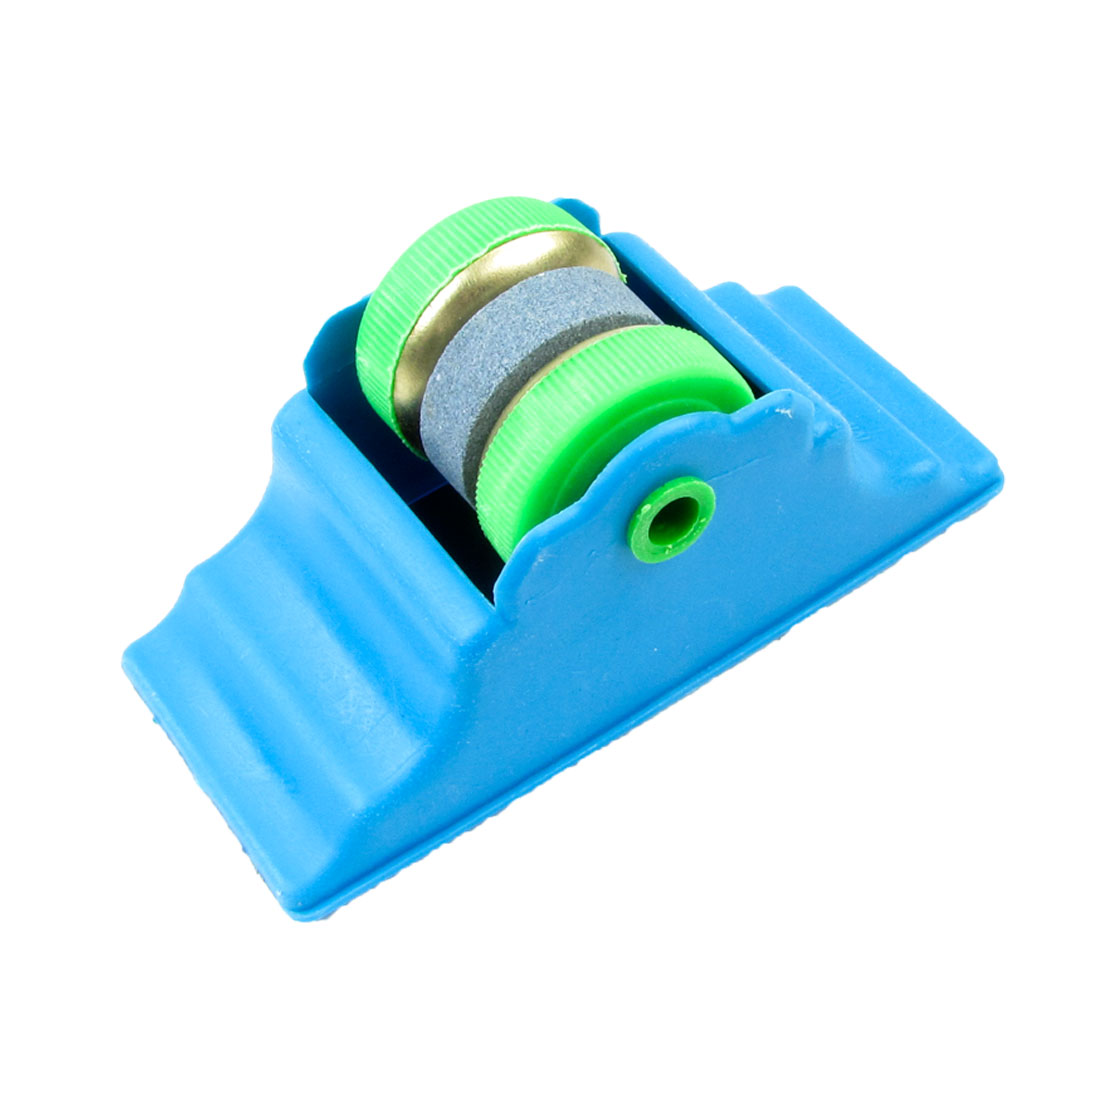 Blue Base Green Round Cutter Grit Lapped Sharpening Whetstone Home Tool